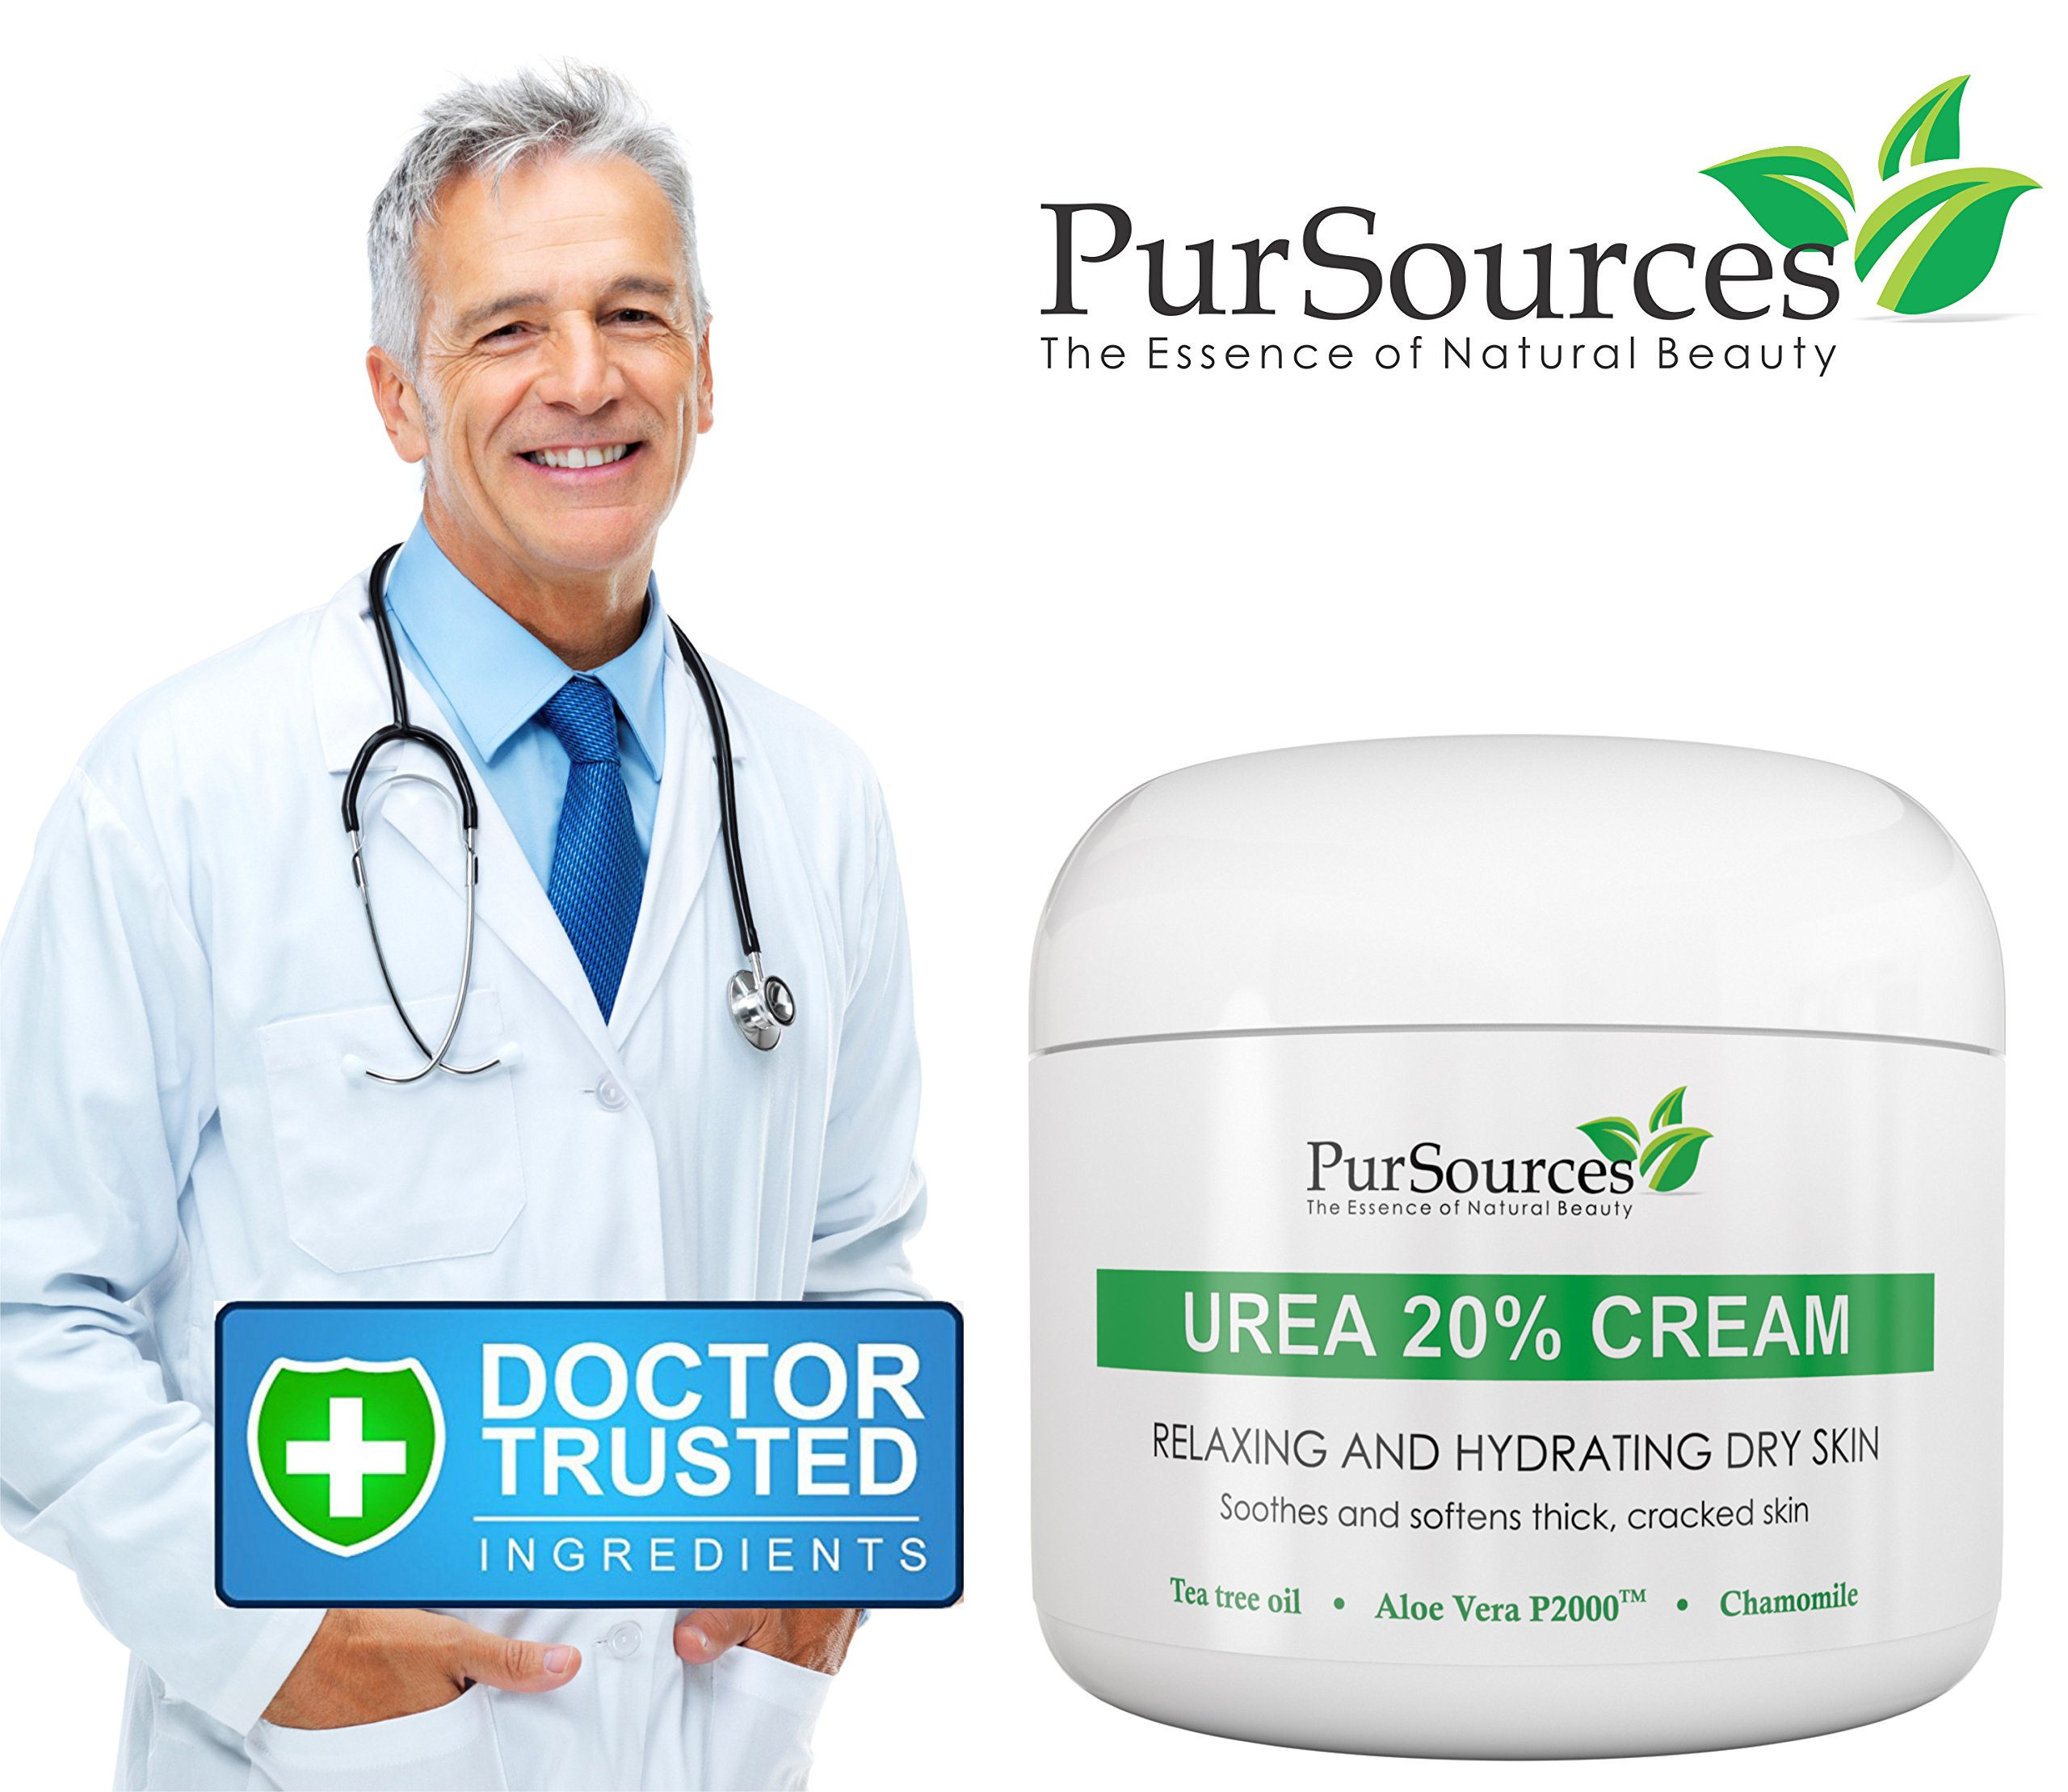 PurSources Urea 20% Foot Cream 4 oz - Best Callus Remover - Moisturizes and Rehydrates Feet - Soothes & Softens Thick, Cracked, Rough Dead and Dry Skin - Your 100% Satisfaction or Money Back Guarantee by PurSources (Image #4)